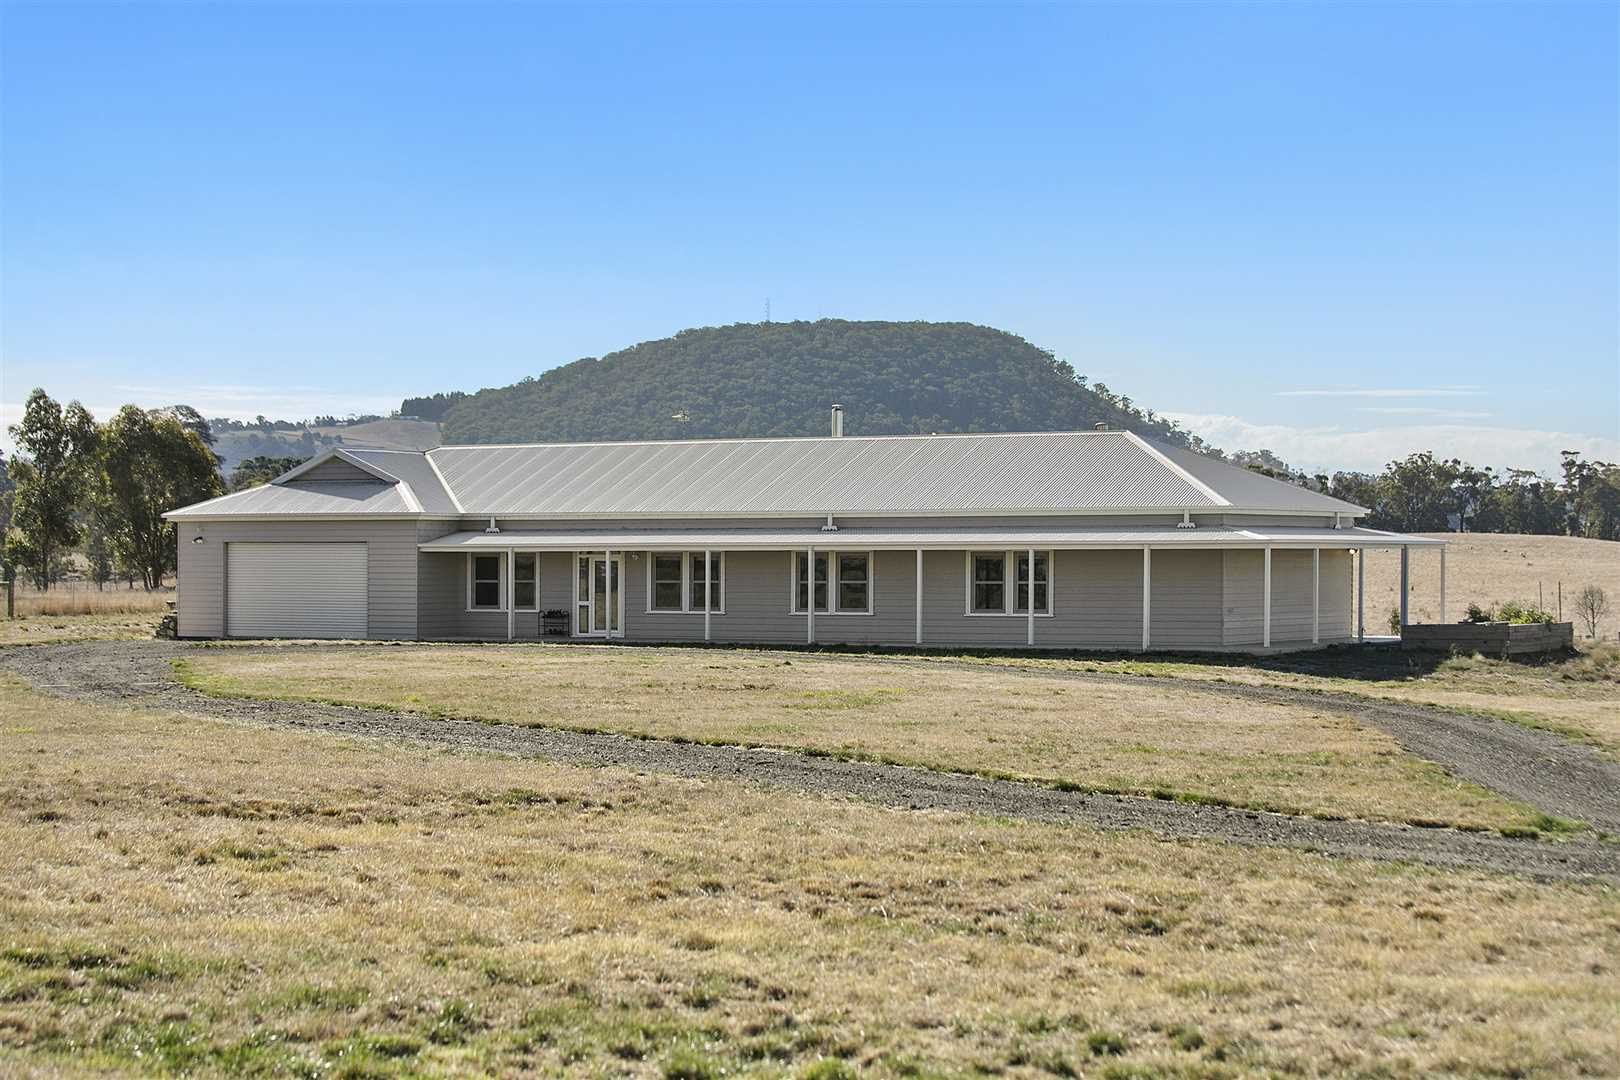 Superior Family Home In Desired Locale - Approx. 43 Acres